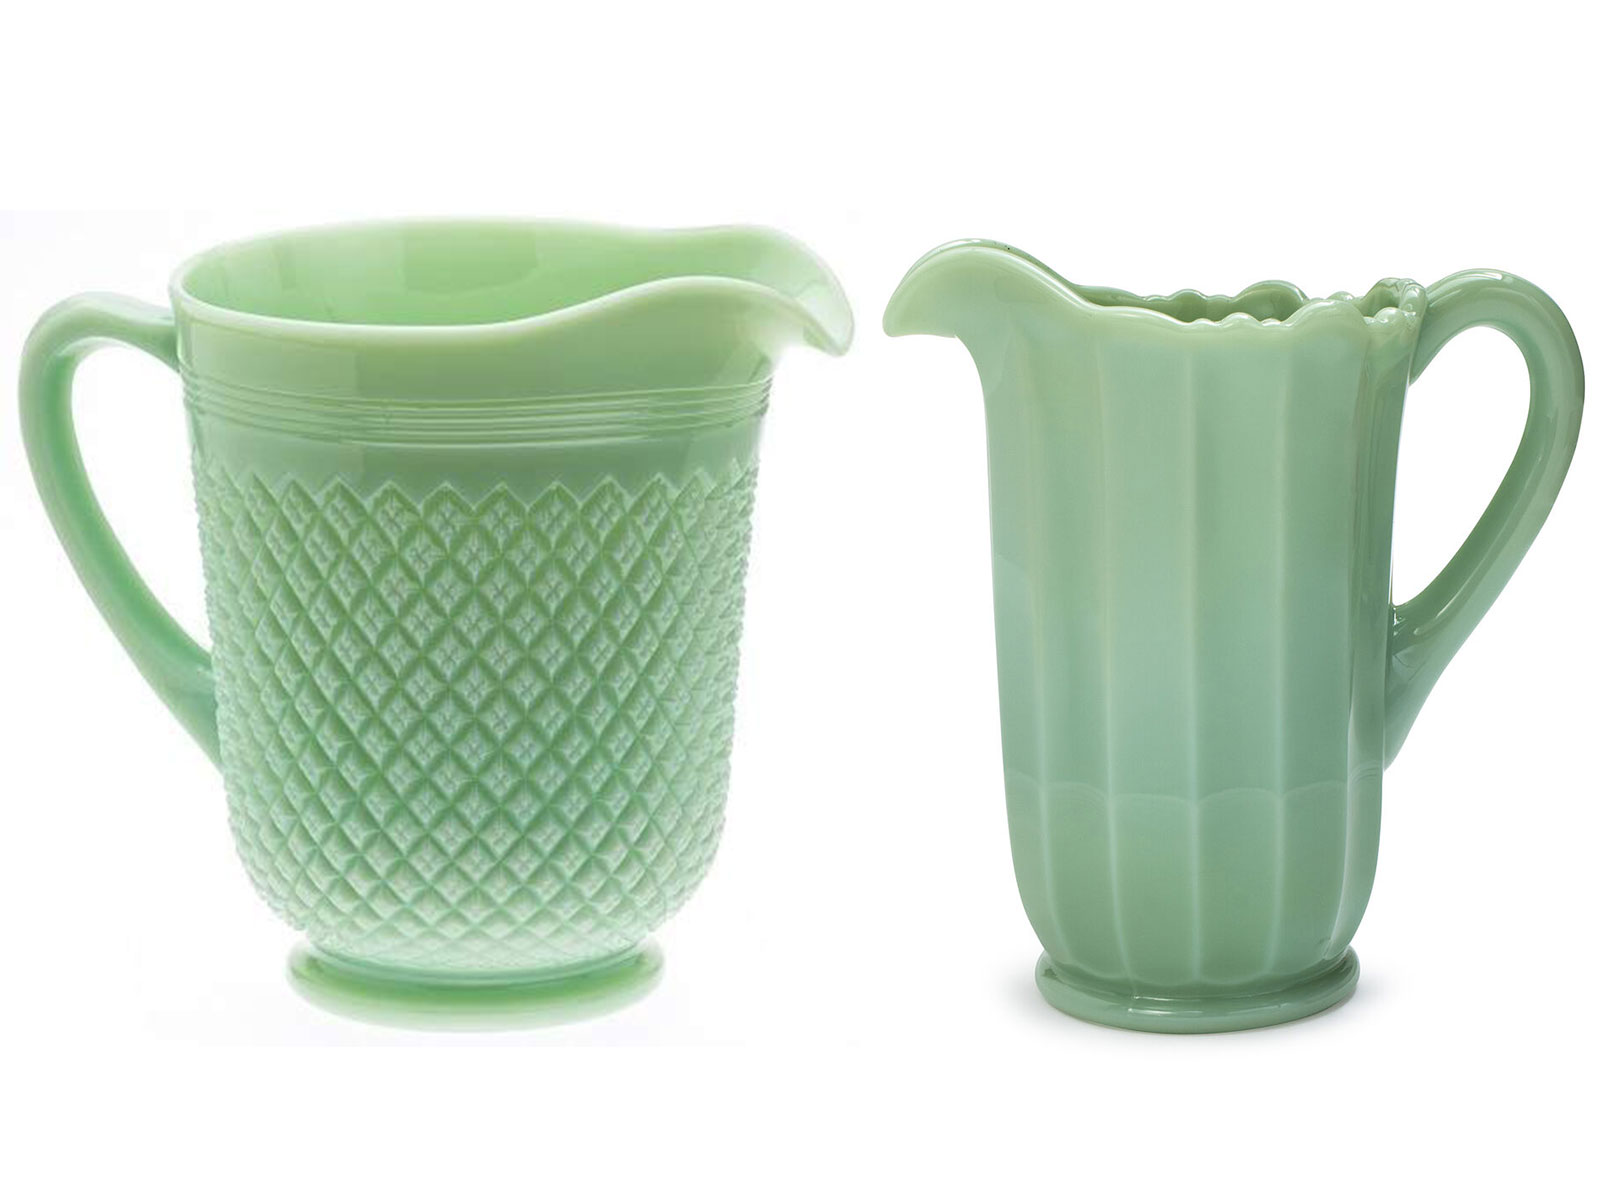 jadeite pitchers